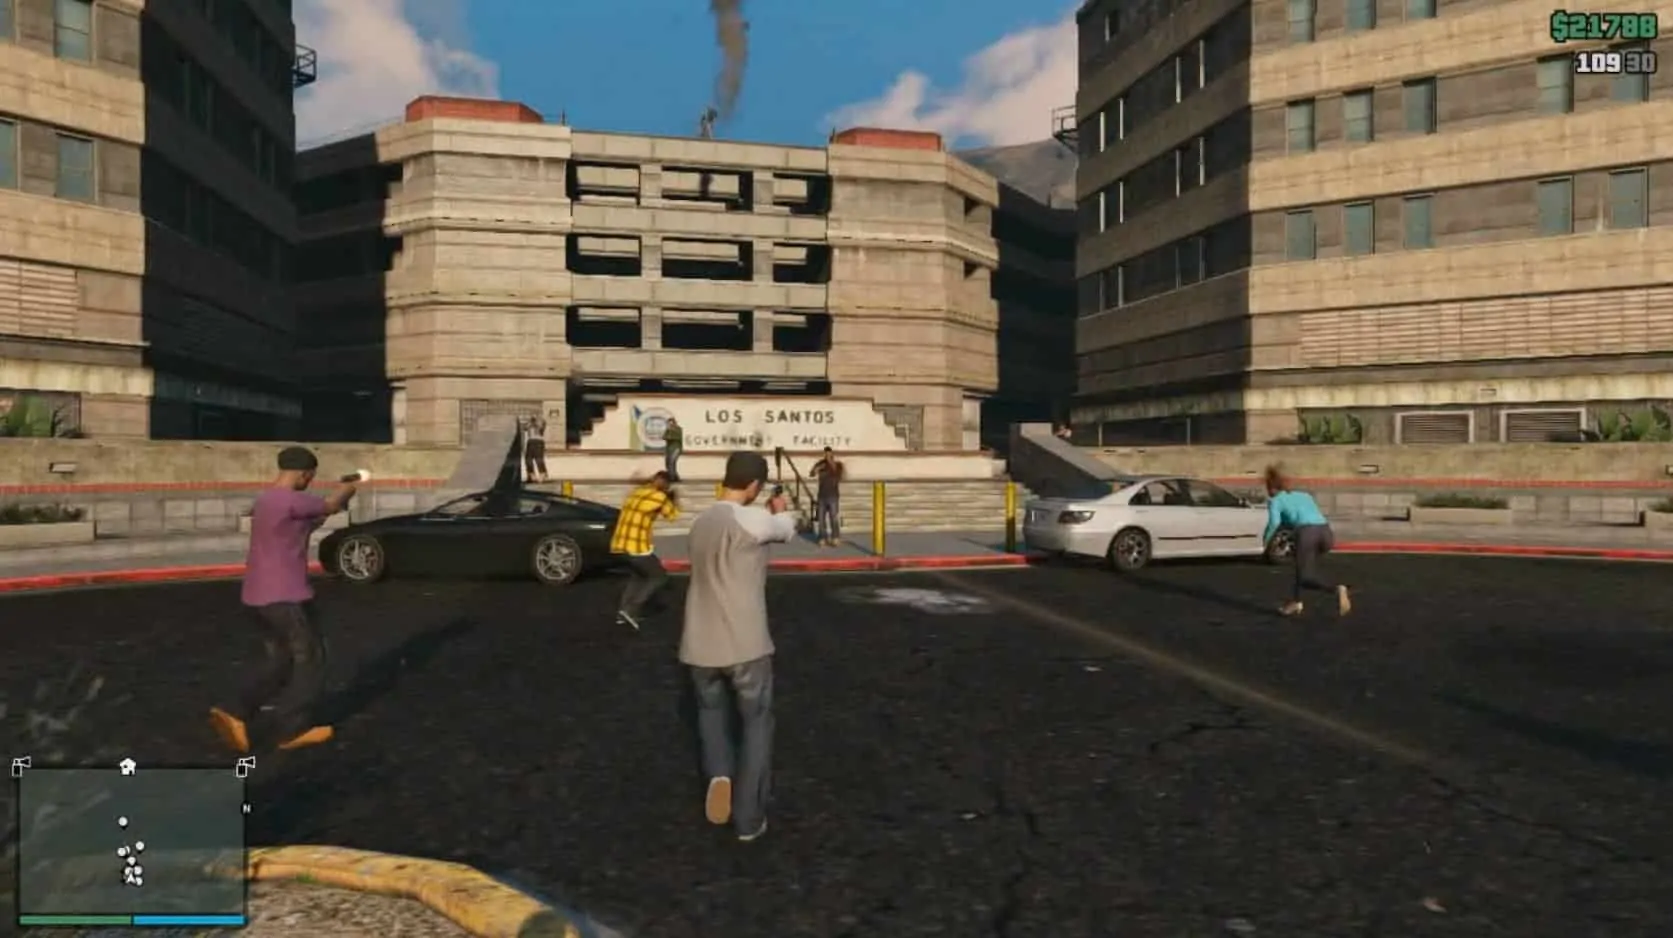 Everything You Need to Know About GTA Online - GTA 5 Cheats